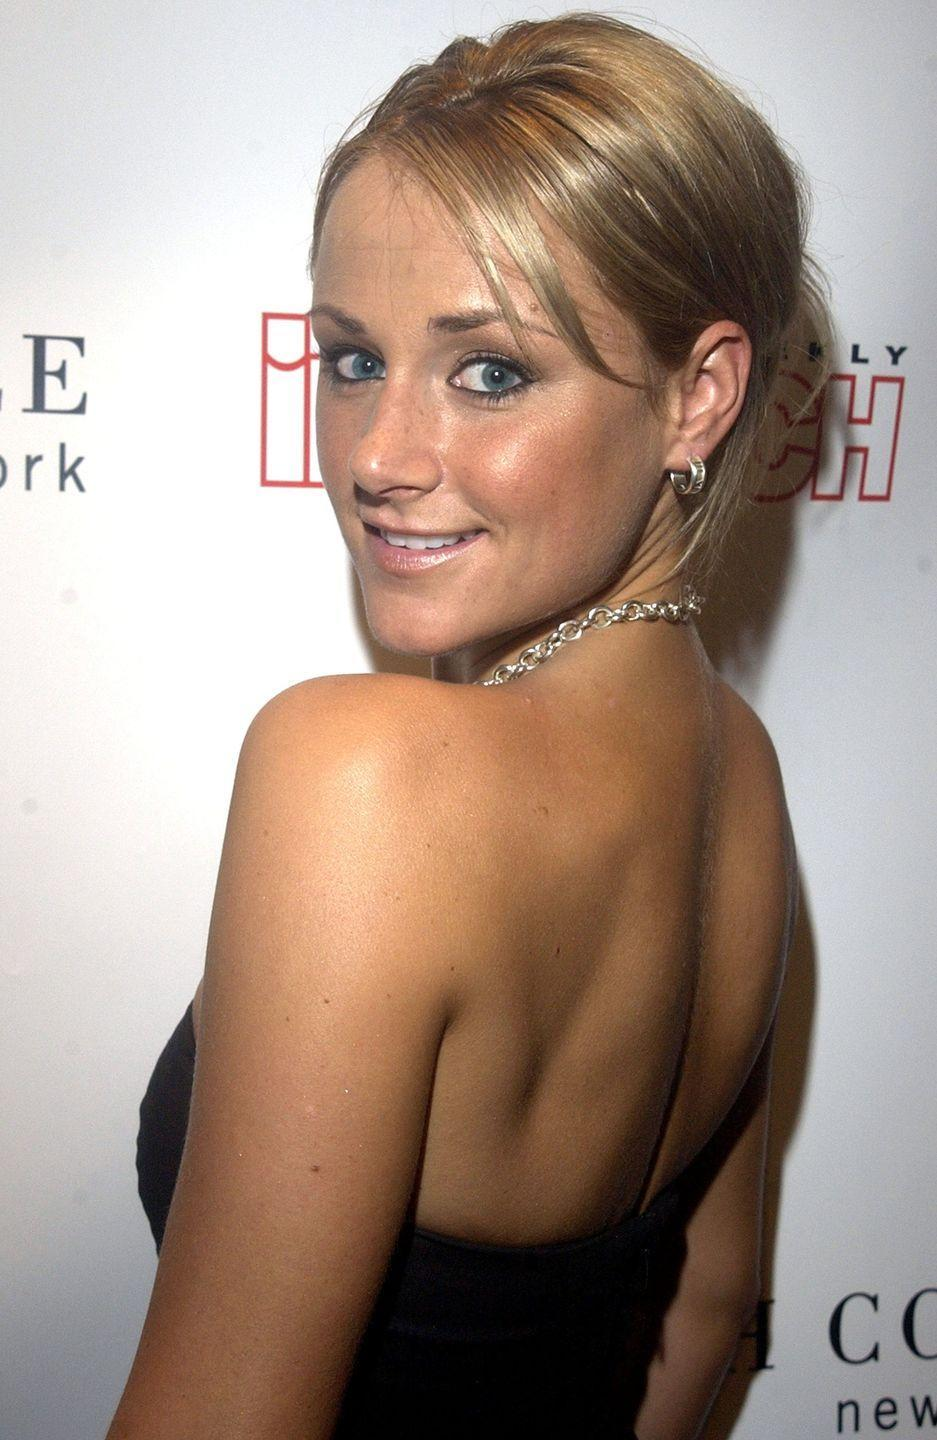 <p>Tonya Cooley entered the spotlight in 2002 on <em>The Real World: Chicago</em>. Throughout the season, her storyline centered around her long distance relationship with her boyfriend, Justin. </p>